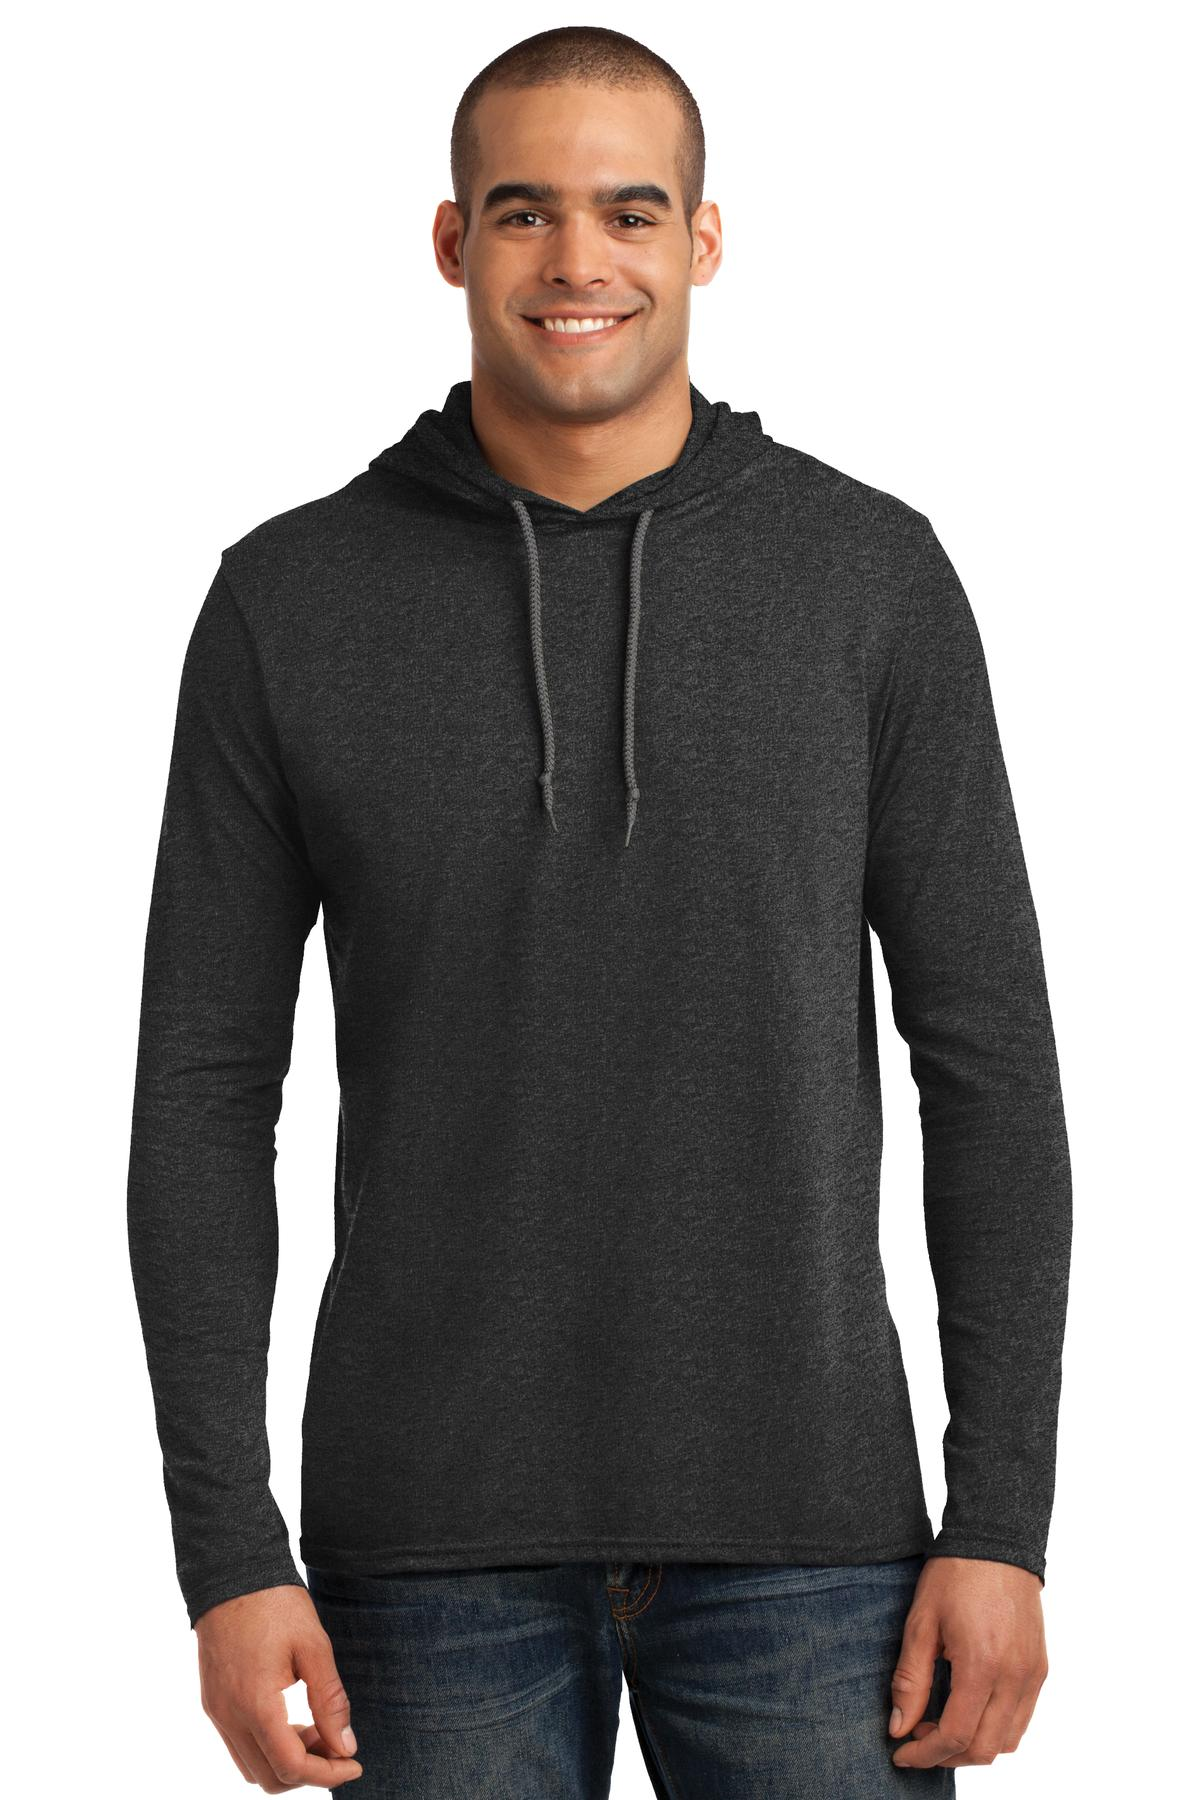 Anvil ®  100% Combed Ring Spun Cotton Long Sleeve Hooded T-Shirt. 987 - Heather Dark Grey/ Dark Grey